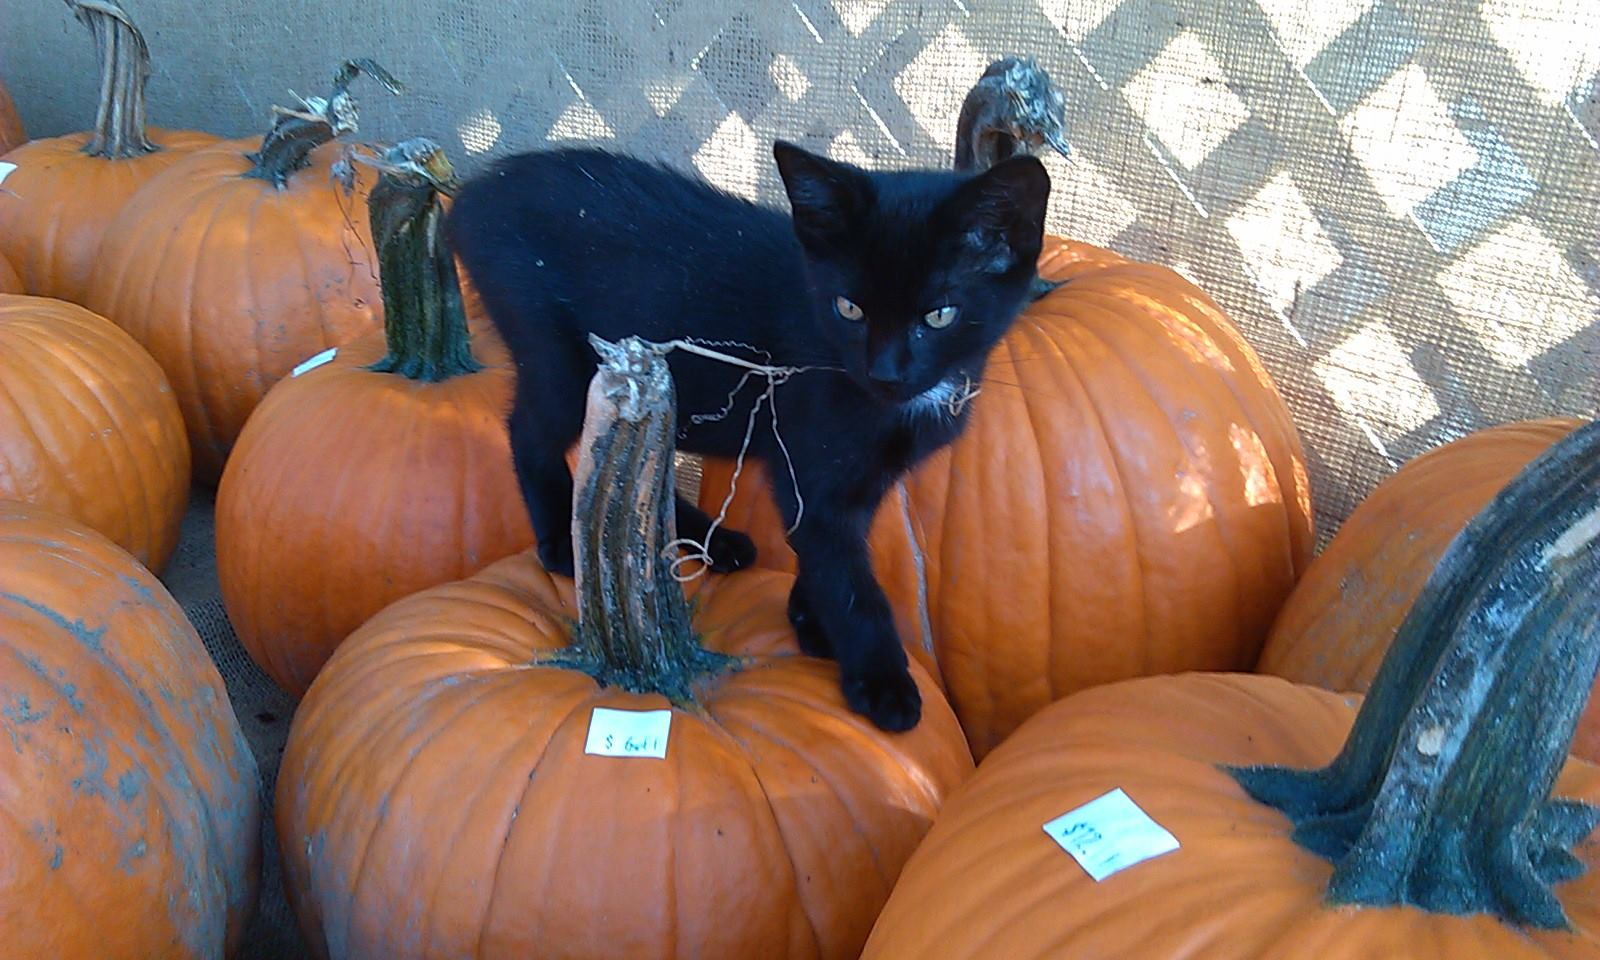 Cat on Pumpkin